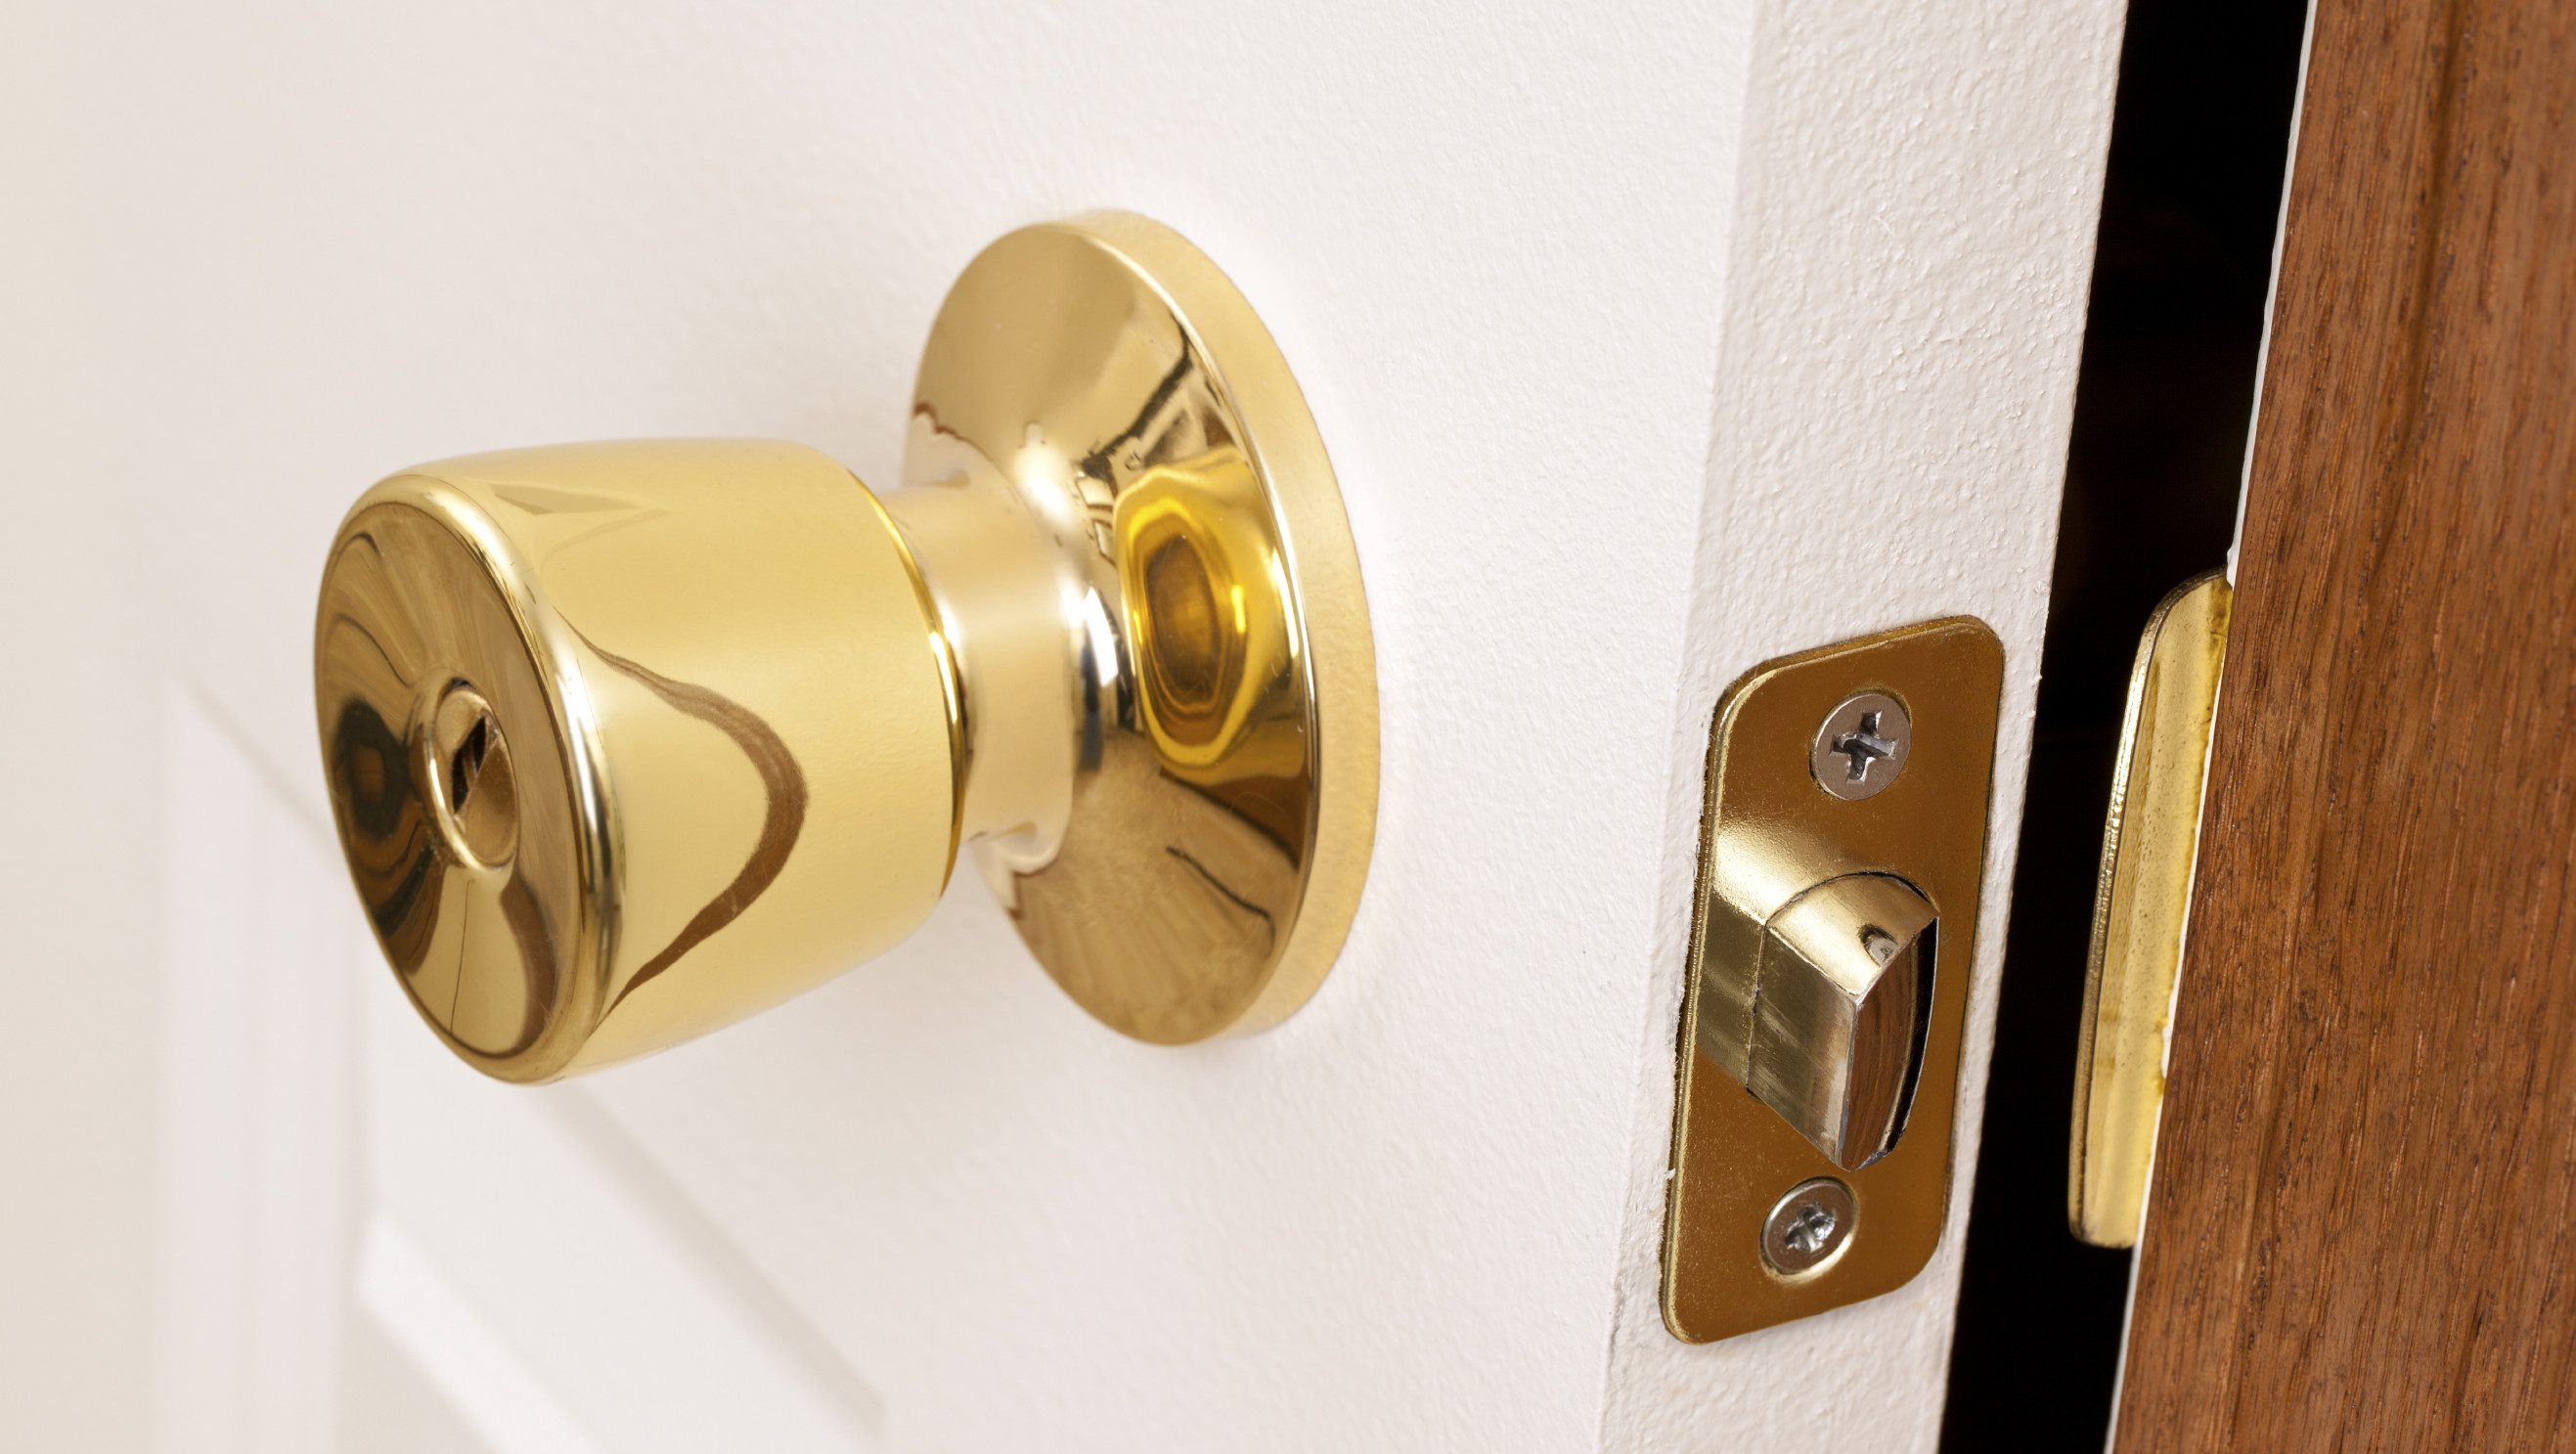 Gold doorknobs could close a lot of doors for potential buyers